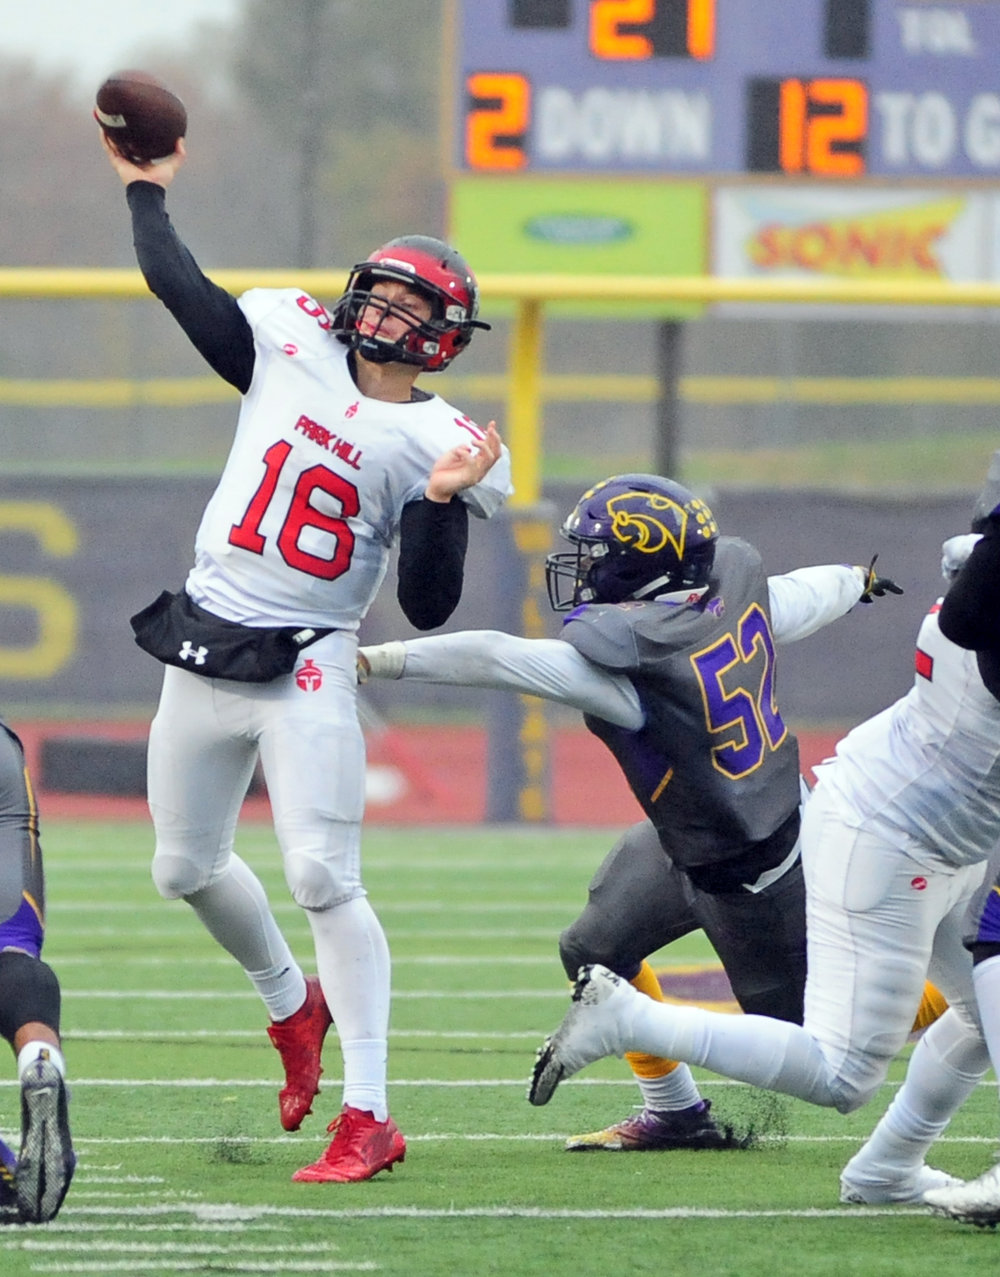 NICK INGRAM/Citizen photo Park Hill senior quarterback Billy Maples throws a pass during a Class 6 semifinal Saturday, Nov. 11 in Blue Springs, Mo.